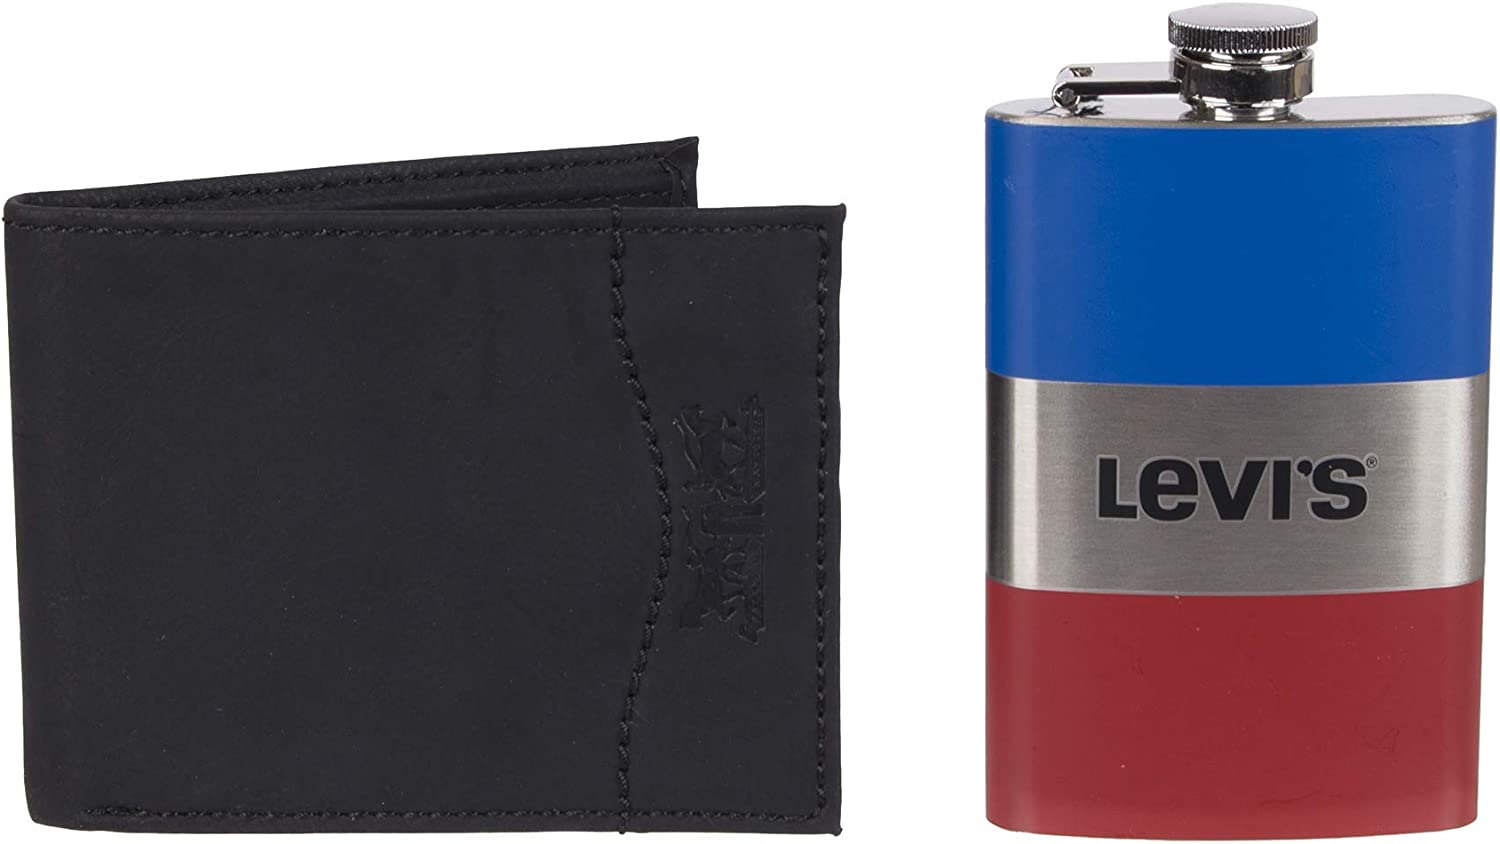 Levis  Mens  Wallet With Gift Set